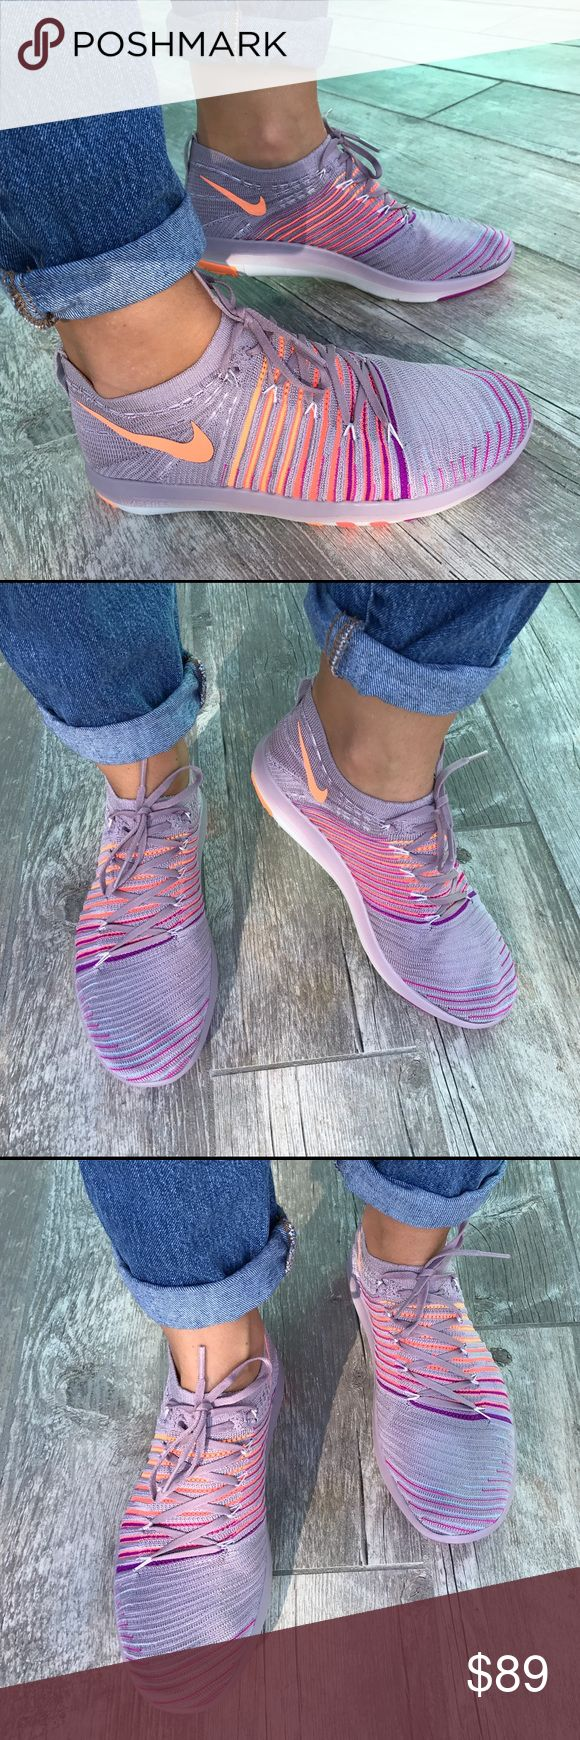 Pinky Nike Mix !Training---Price Firm--- Pinky Nike Mix ! Nike Shoes Sneakers